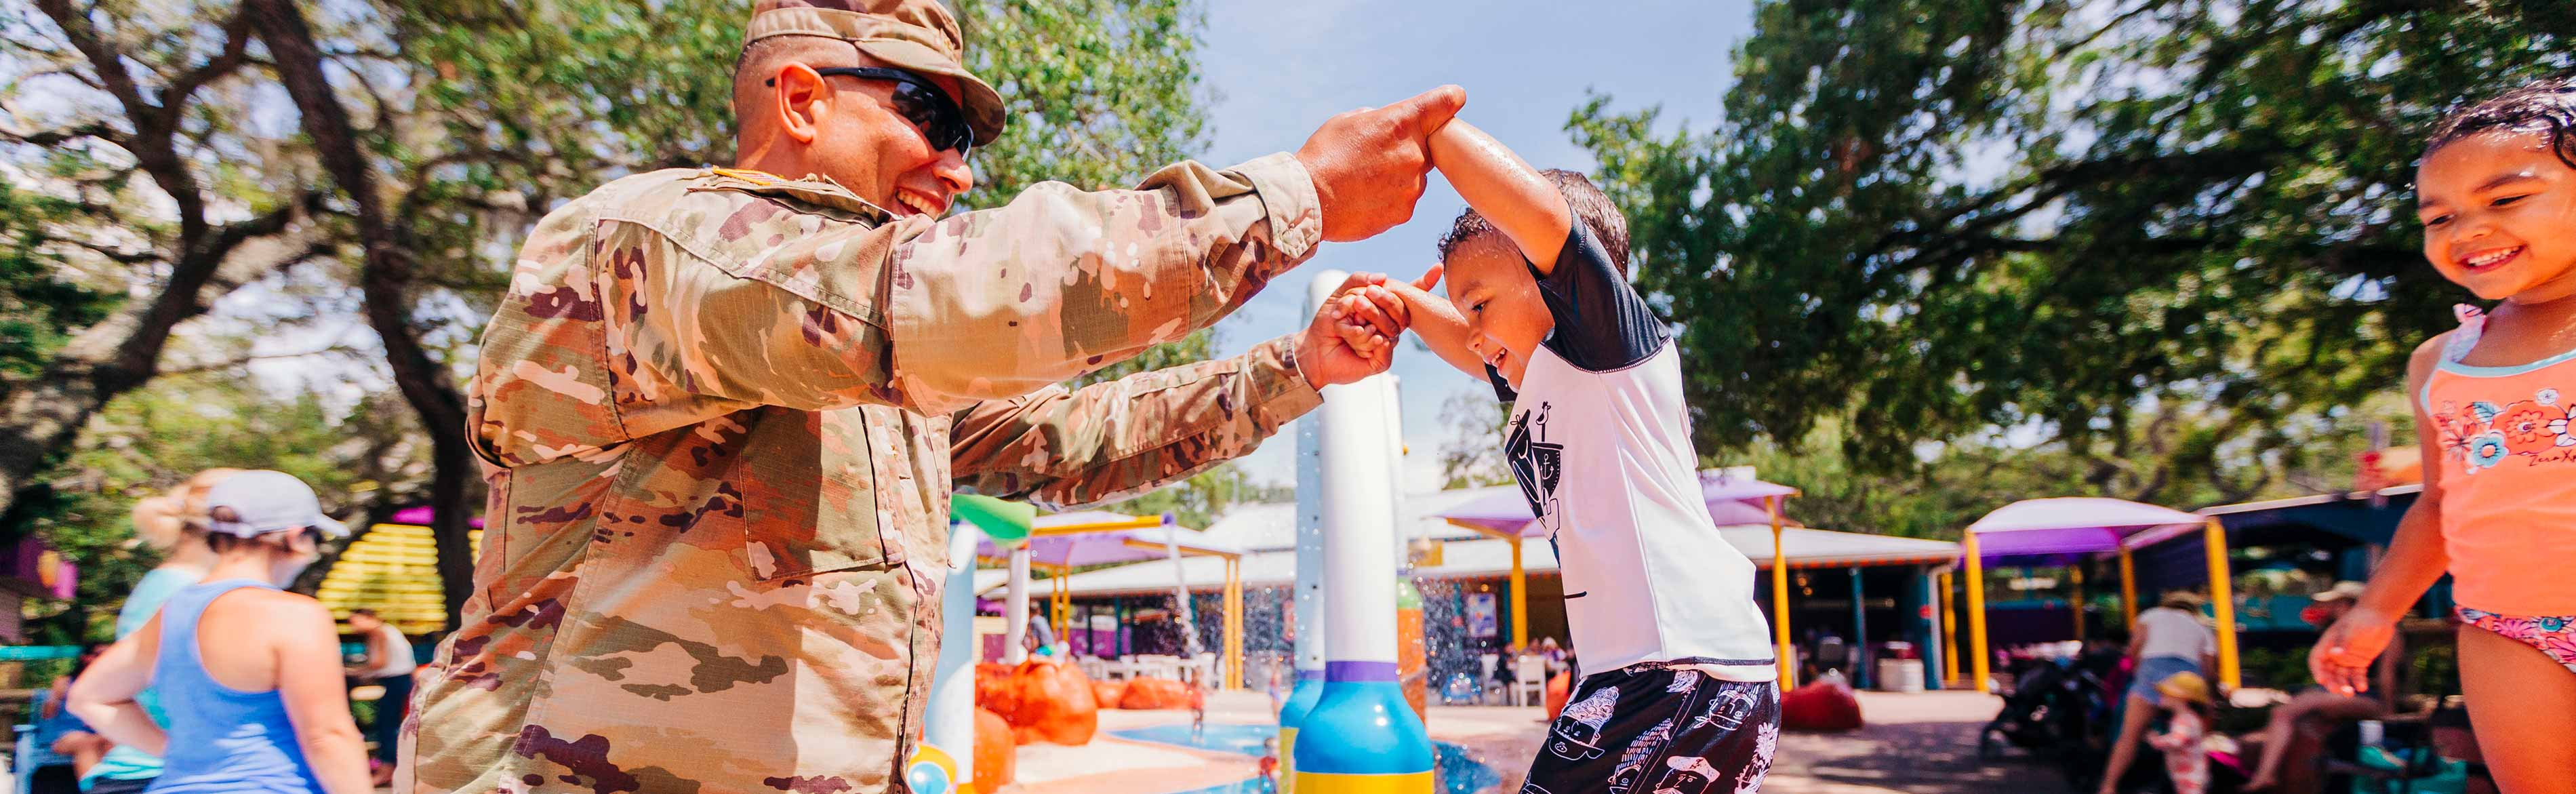 A military serviceman and his family enjoy ZooTampa at Lowry Park